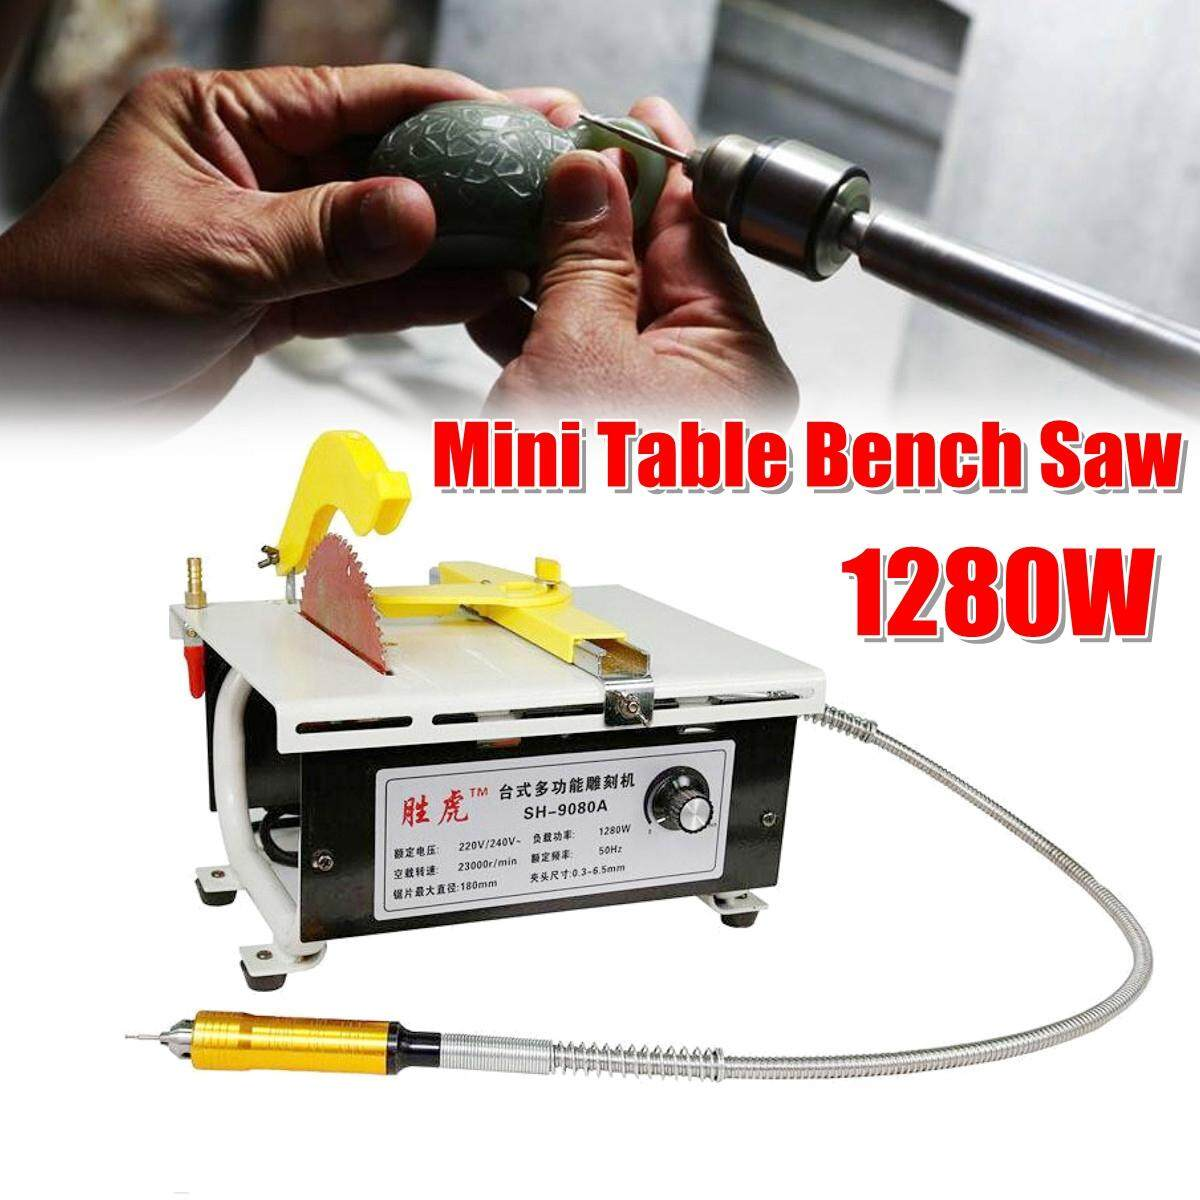 【Free Shipping + Flash Deal】1280W 220V Mini Table Bench Saw Jade Sculpt Carving Belt Machine Polishing Bench Grinder Standard